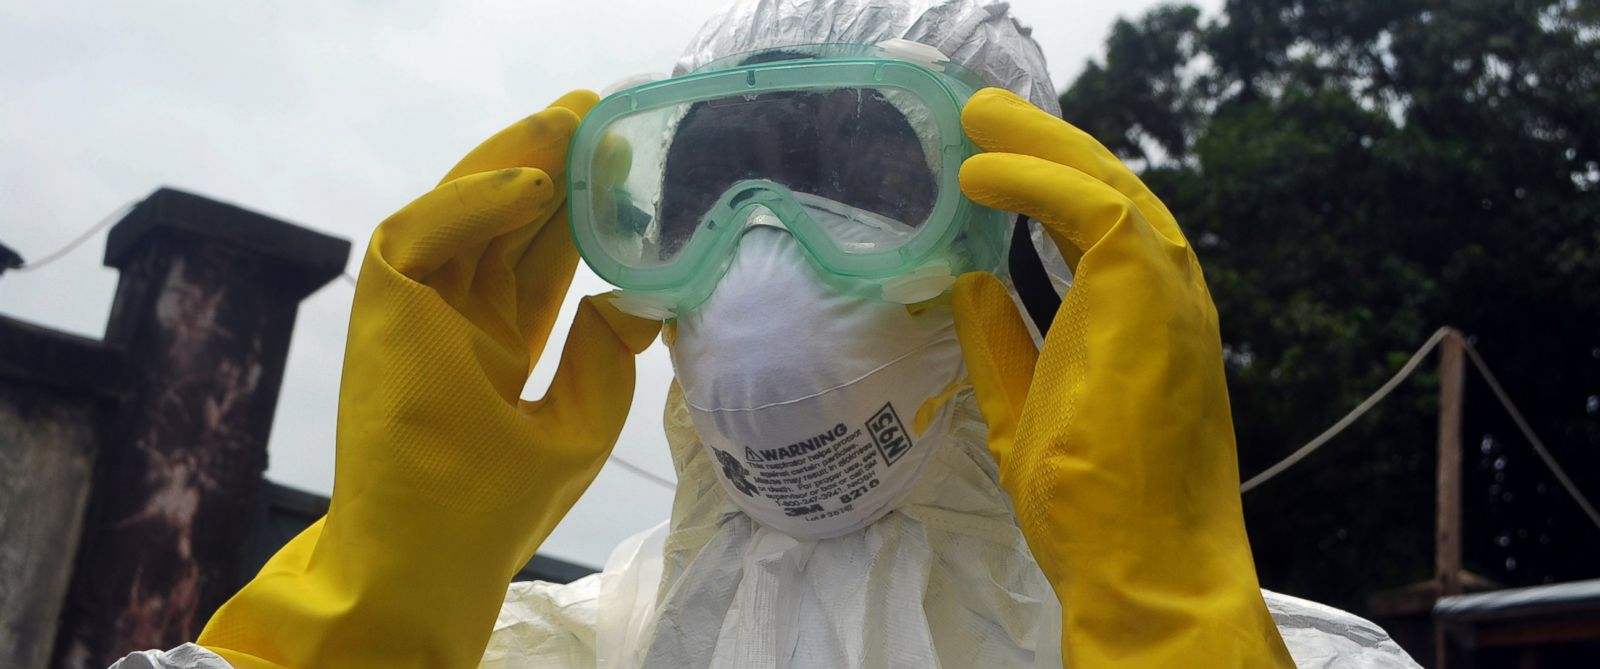 PHOTO: A member of a volunteer medical team wears protective glasses before burying the body of an Ebola victim in Conakry, Guinea on Sept. 13, 2014.